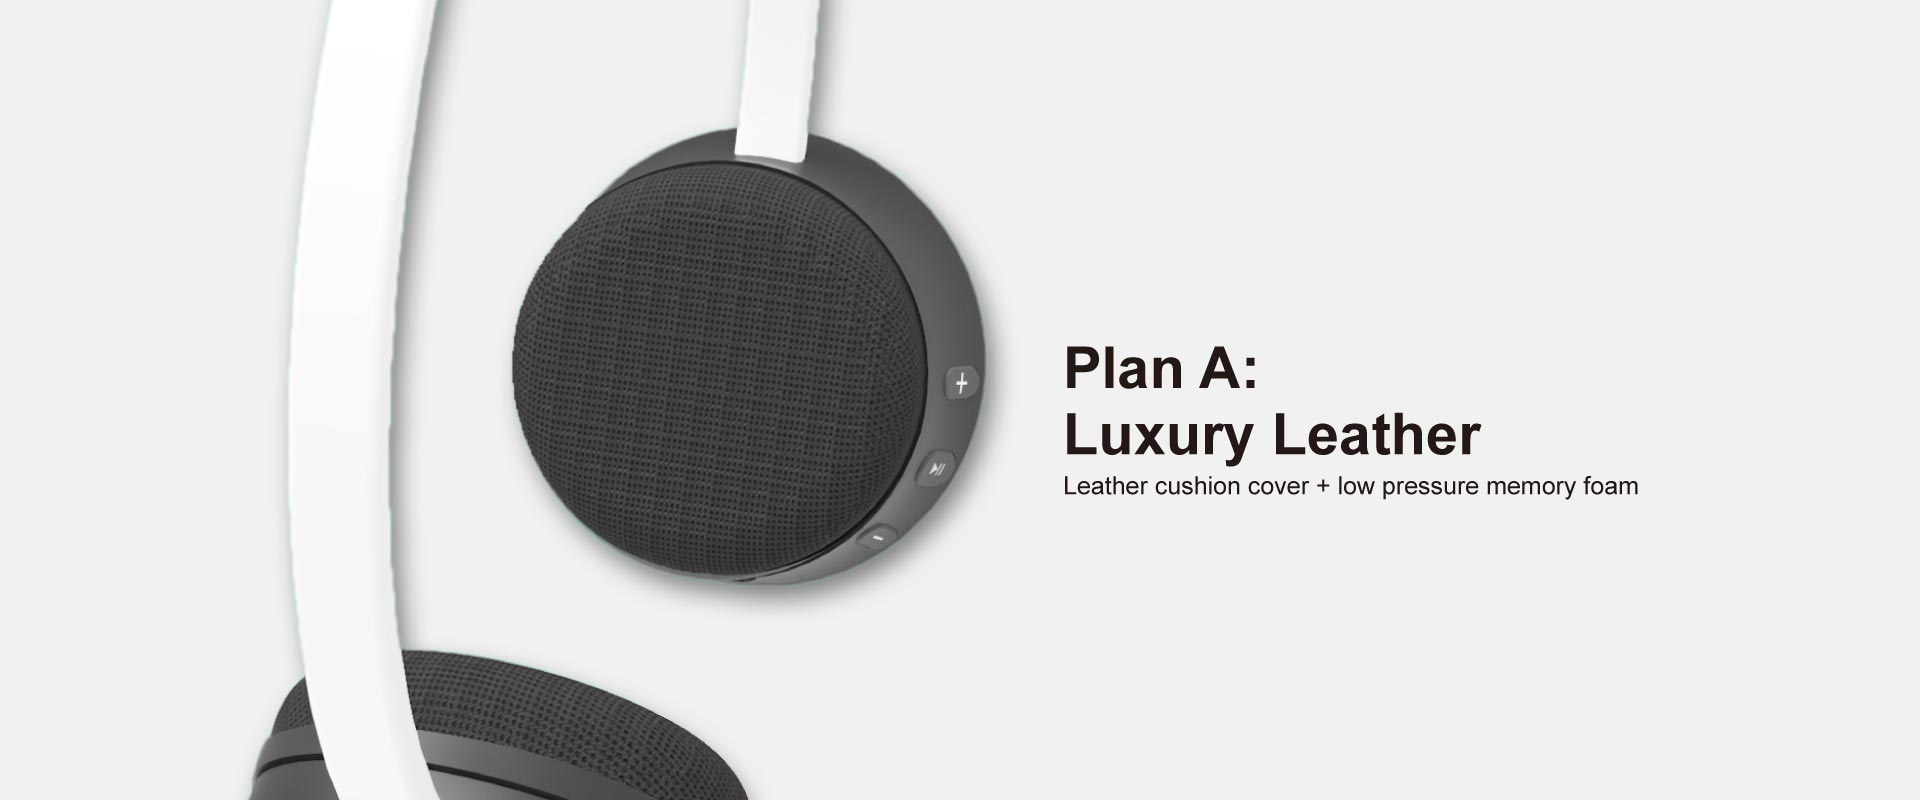 934-Plan-A-Luxury-Leather-05100